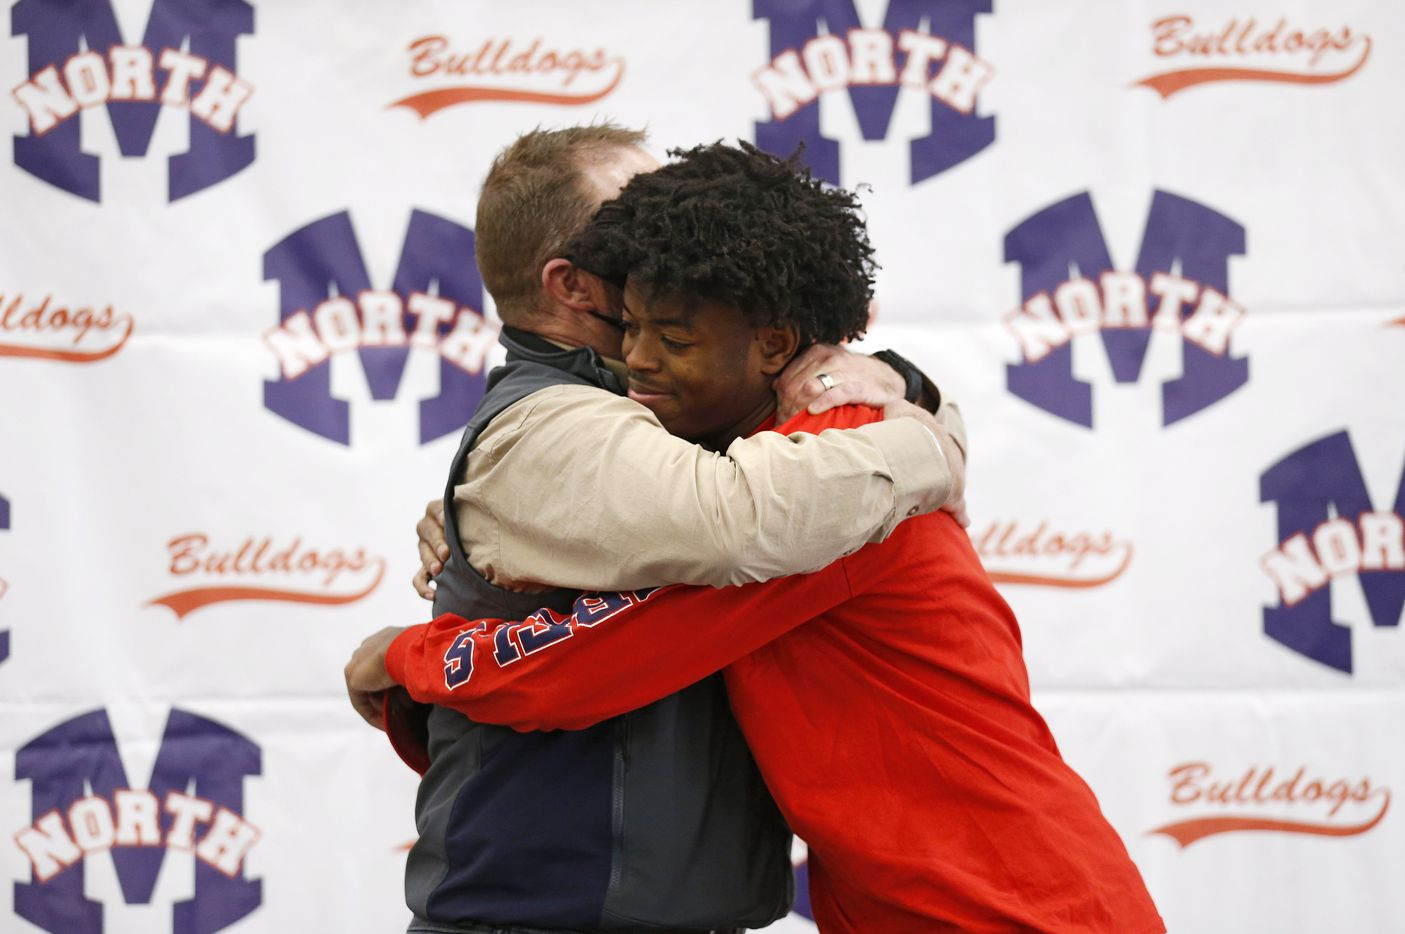 McKinney North wide receiver J.J. Henry gets a hug from McKinney North head coach Mike Fecci after signing his letter of intent to play for the University of Mississippi during a signing day ceremony at McKinney North High School on Wednesday, December 16, 2020 in McKinney, Texas. (Vernon Bryant/The Dallas Morning News)